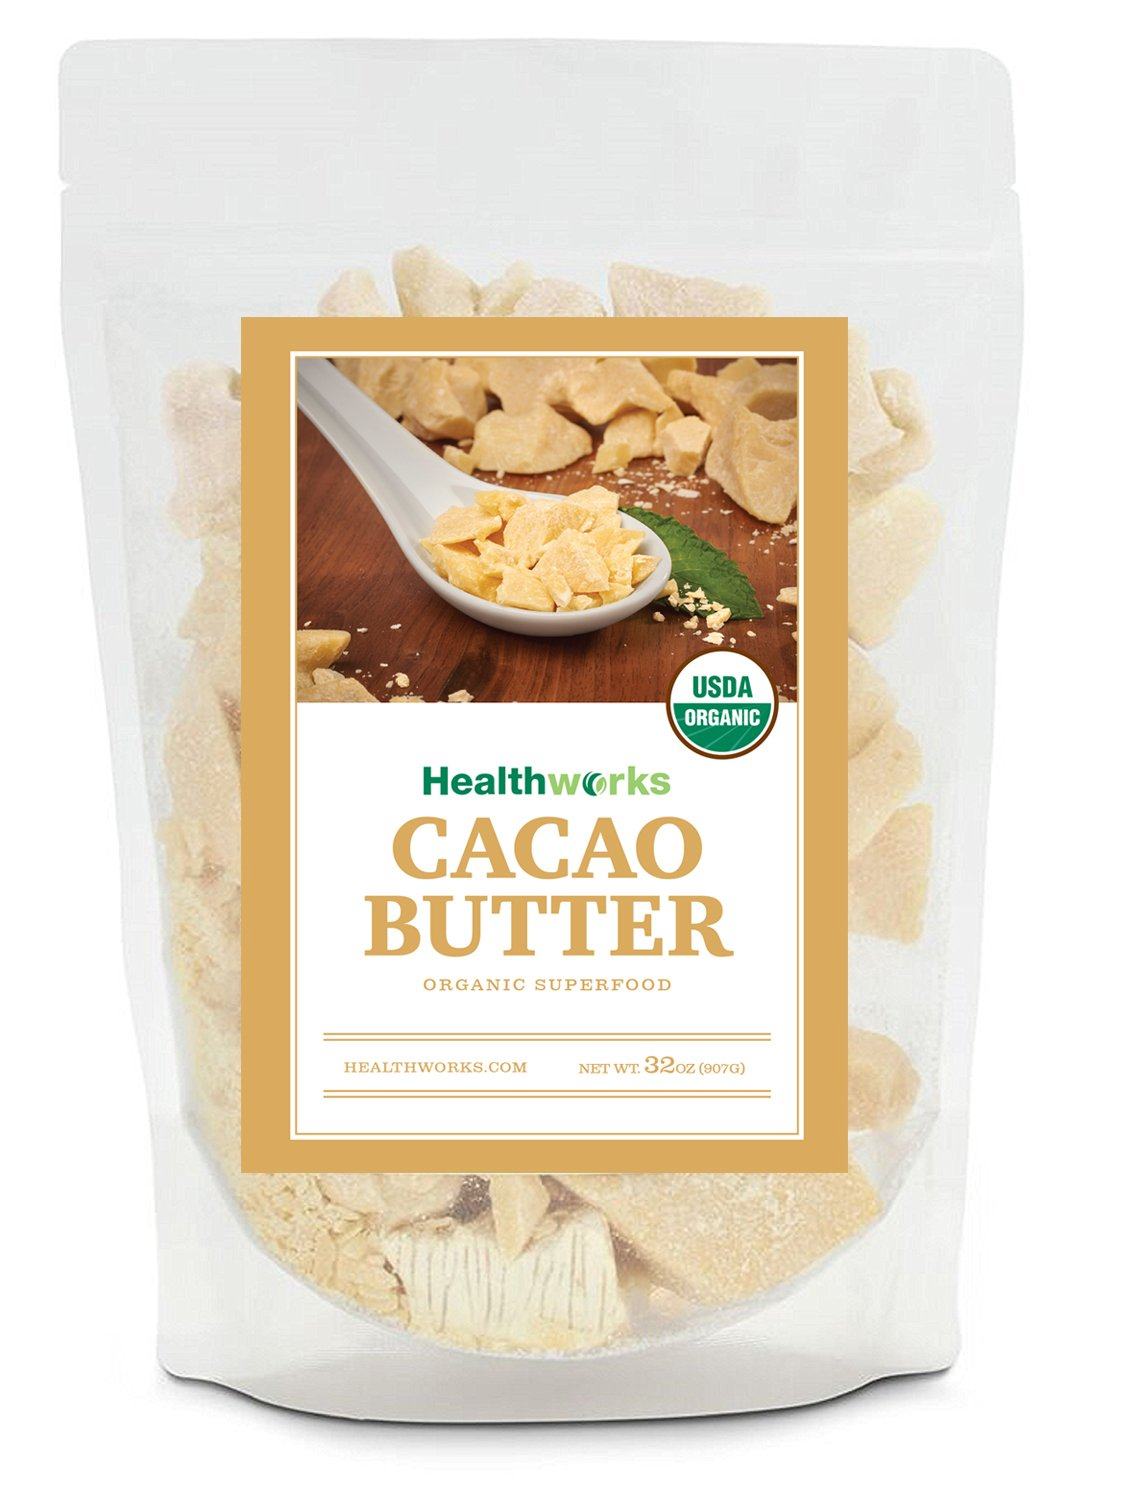 Healthworks Cacao Butter Organic, 2lb